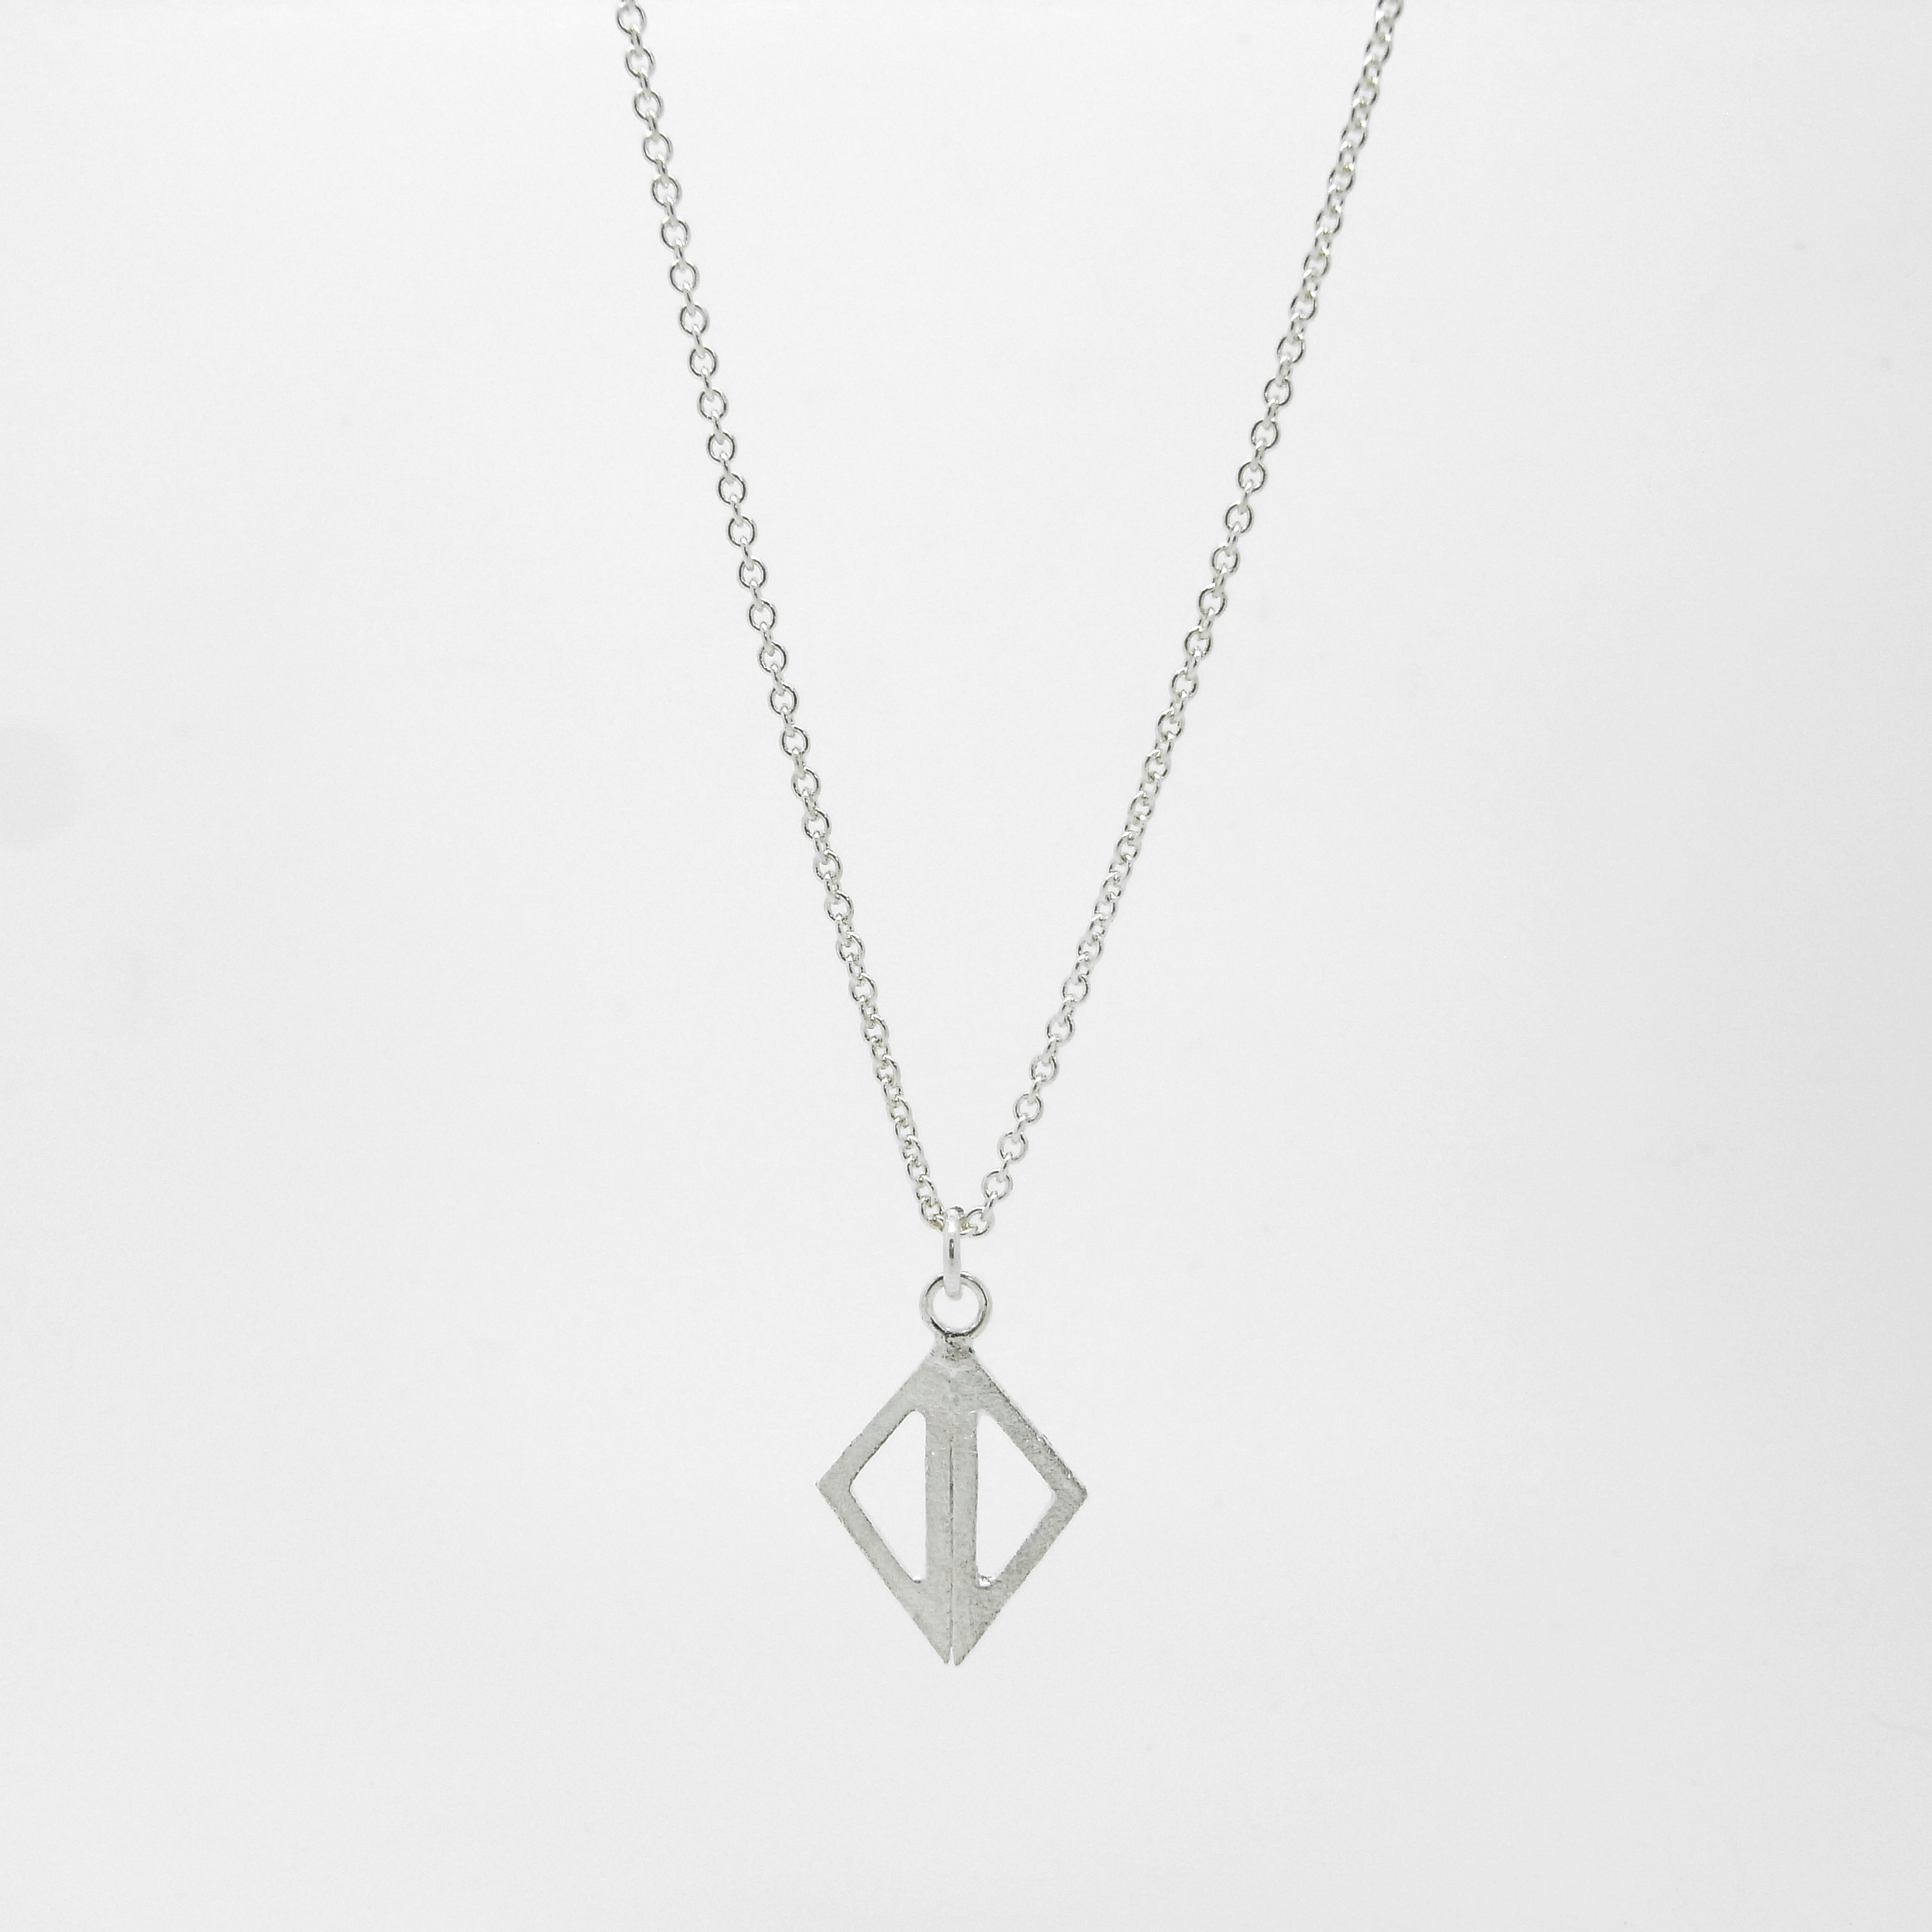 SALE - Double Triangle Necklace